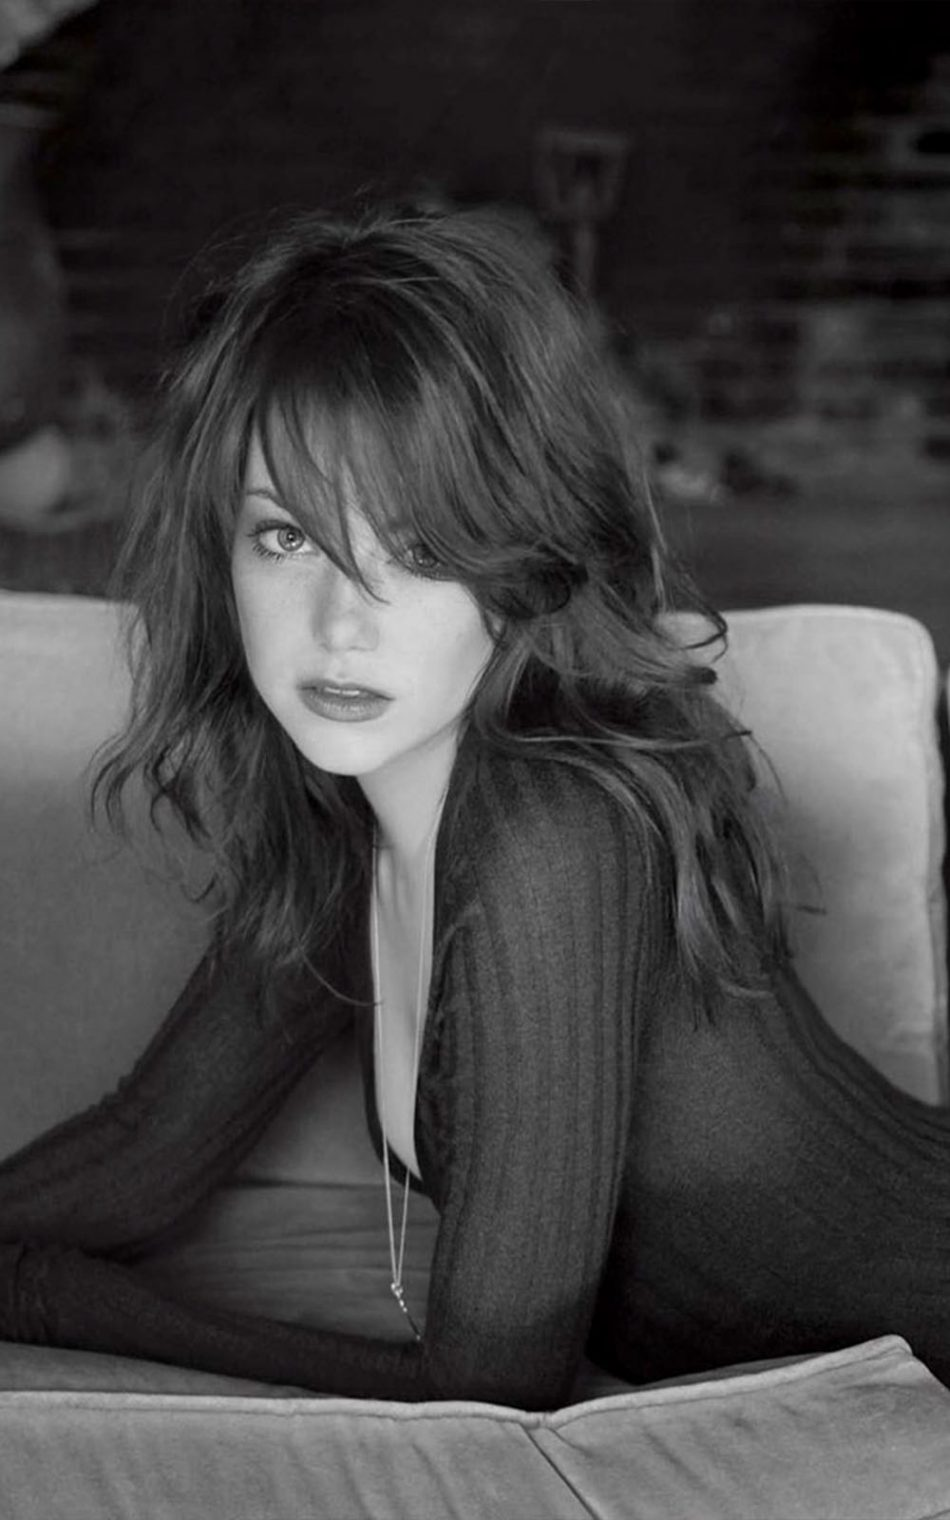 Download Emma Stone Hot BW Photoshoot Free Pure 4K Ultra HD Mobile